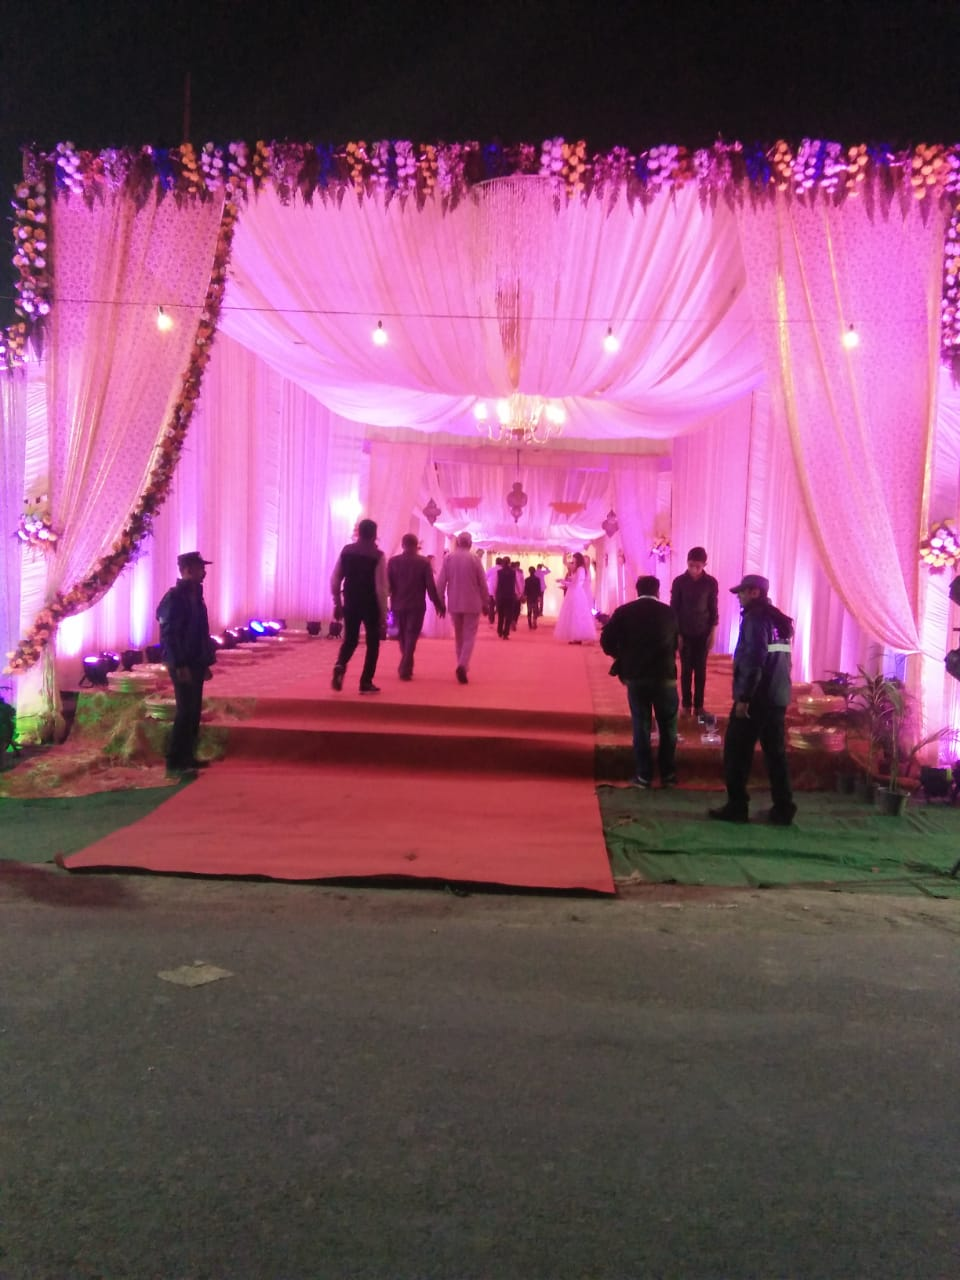 Tent House Gurgaon SECTOR 50 & Tent House in Gurgaon | Wedding tent house in Gurgaon |Tent house in ...